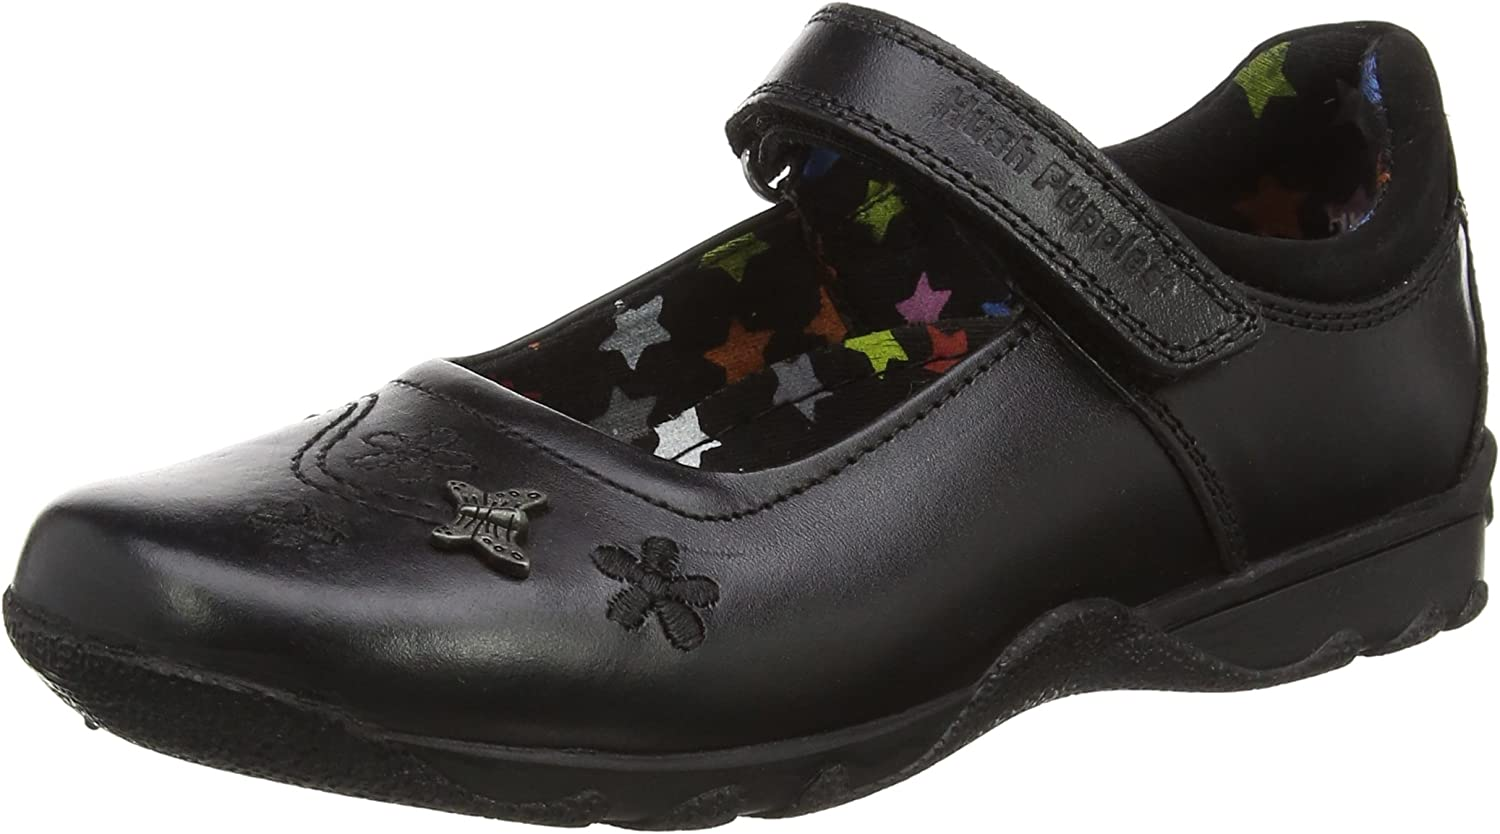 Hush Puppies Womens Clare Back to School shoes Black Size UK 2.5 EU 35